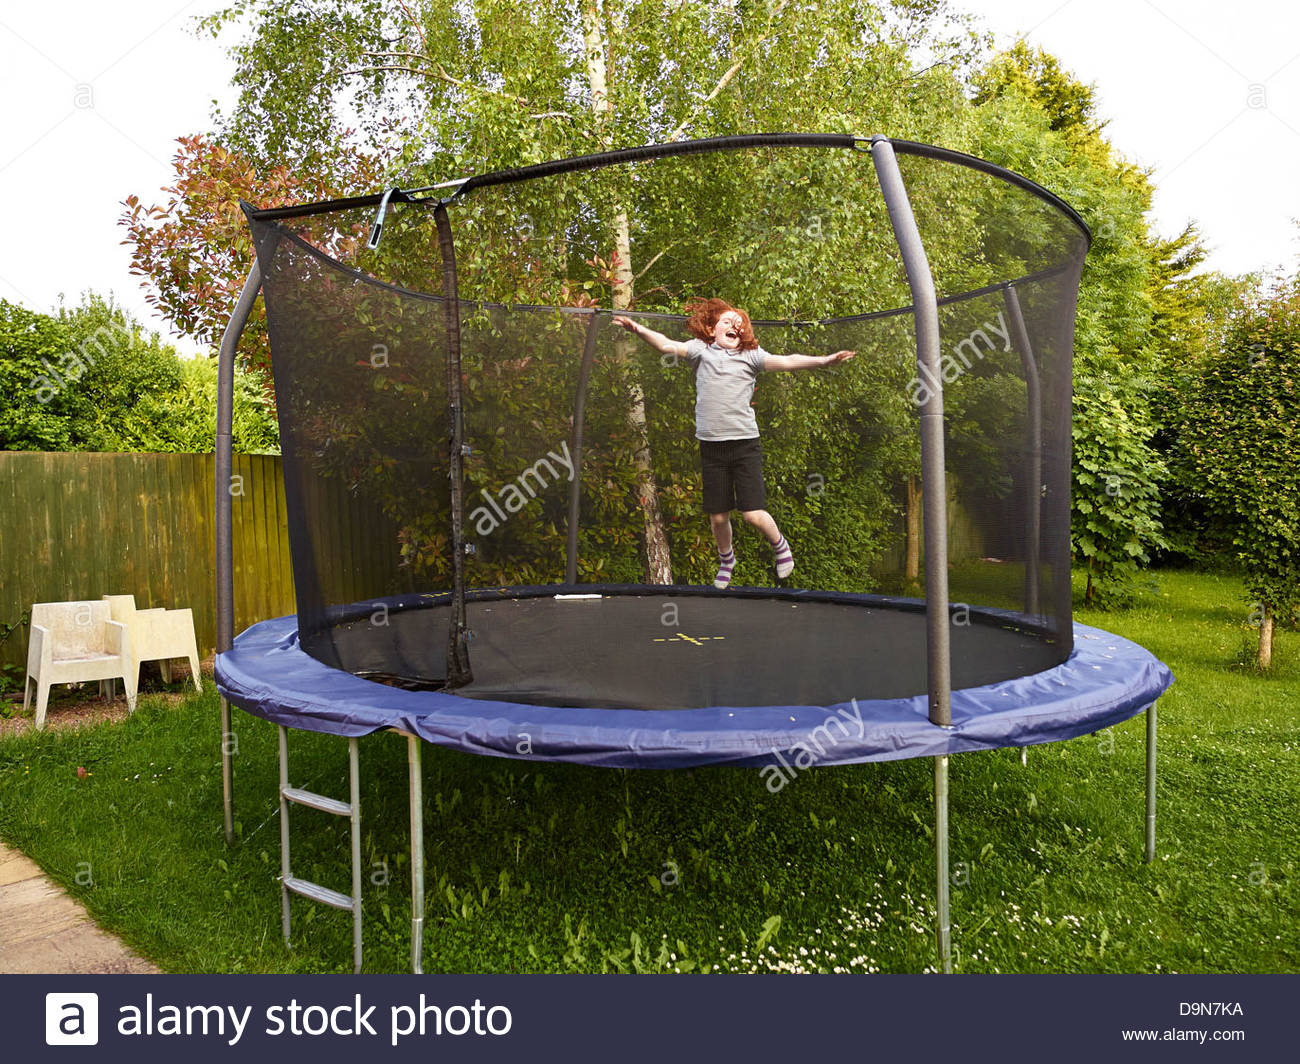 Awesome Young Girl Bouncing On A Garden Trampoline With A Safety Net At Dusk In The  Summer In Oxfordshire England UK